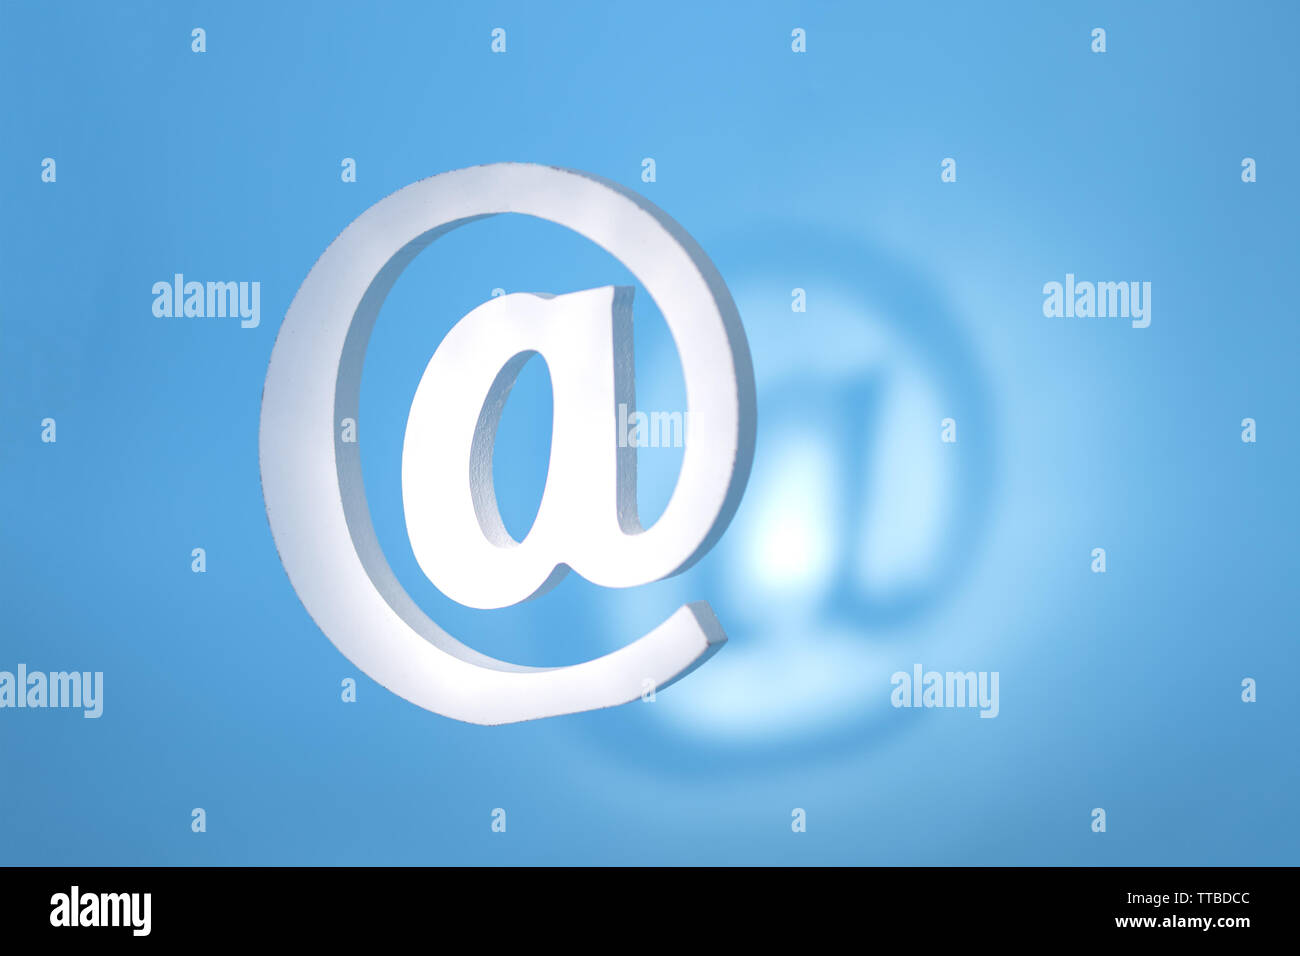 floating email sign on blue background with real shadow. Concept for email, communication or contact us - Stock Image